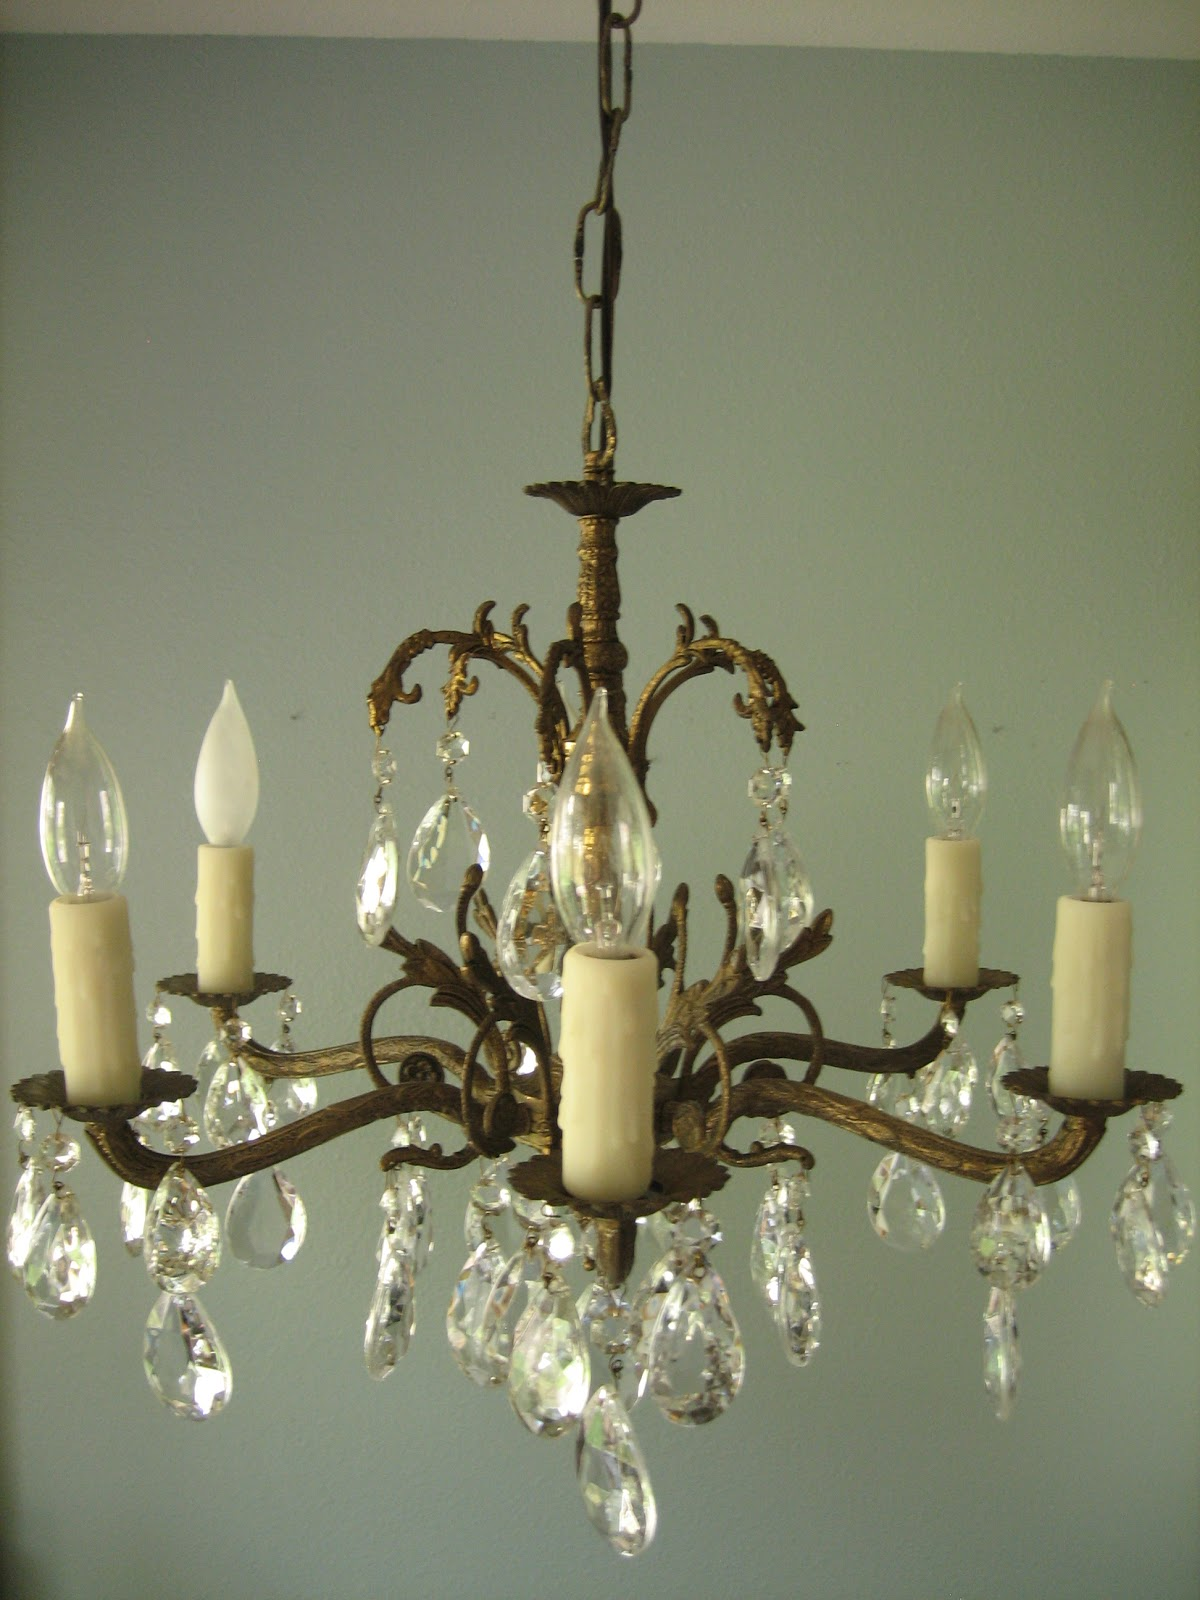 hotel_banyurip: How to Install a Chandelier